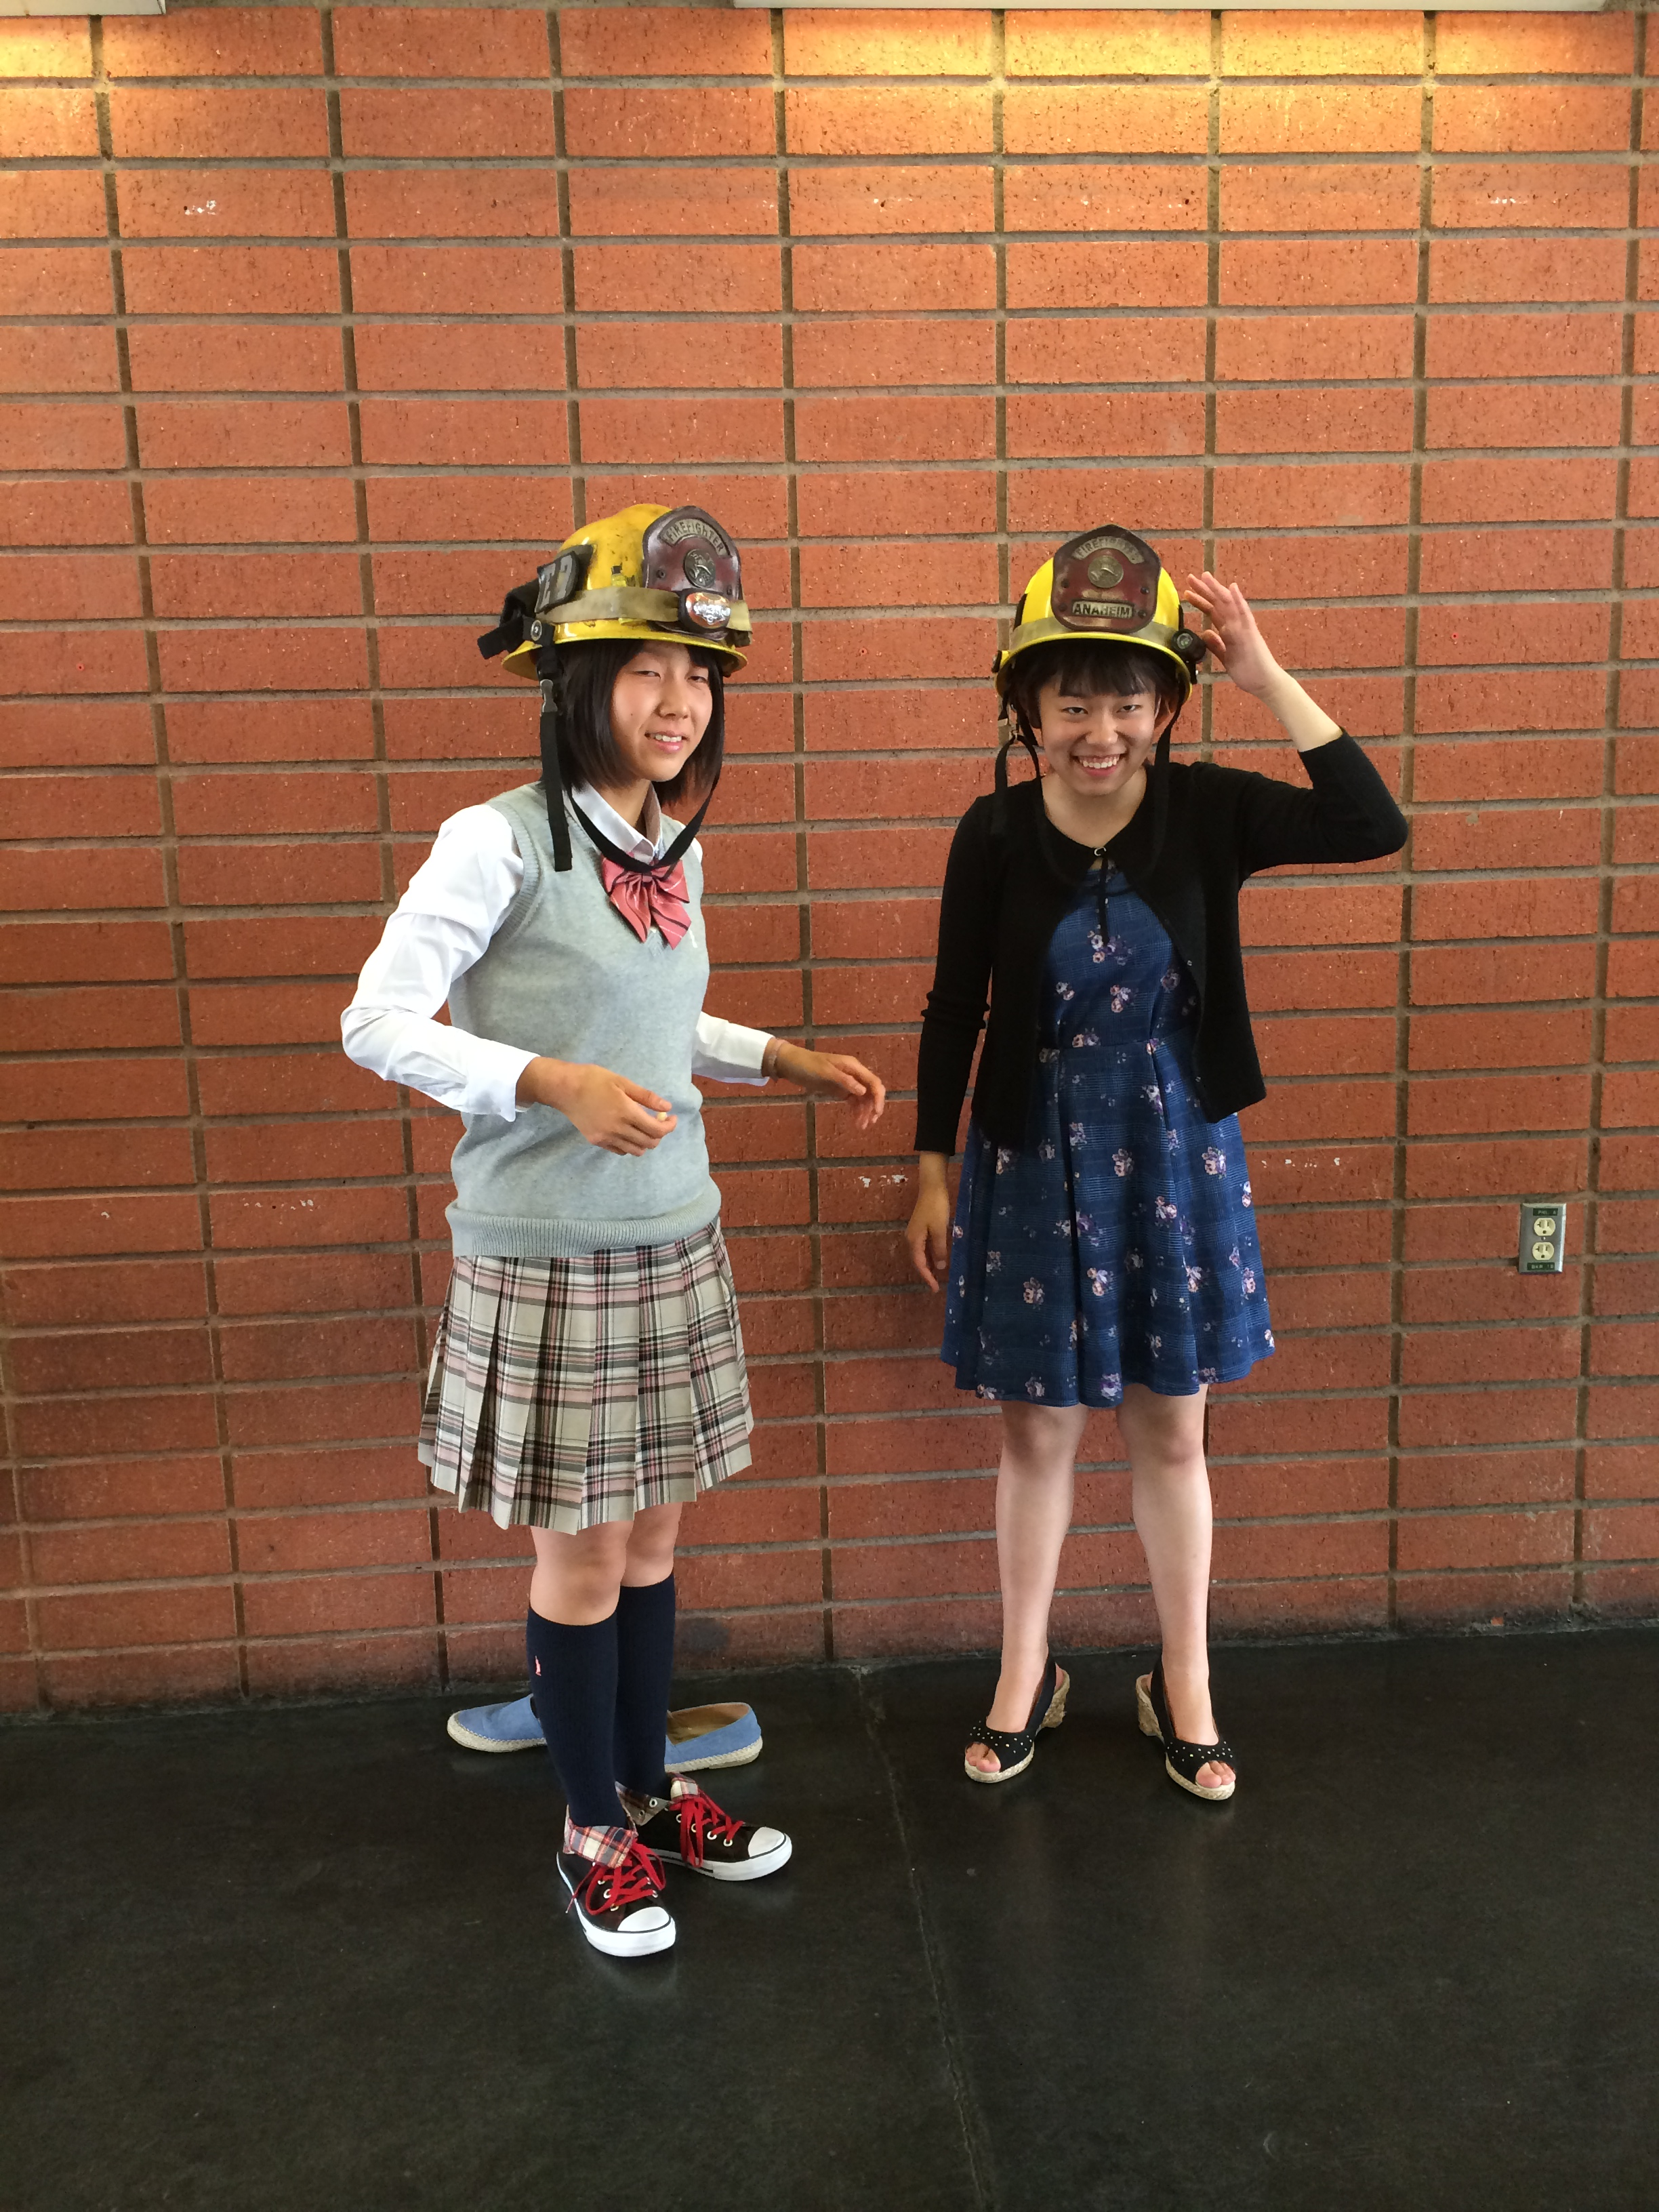 Two girls trying on firefighter helmets